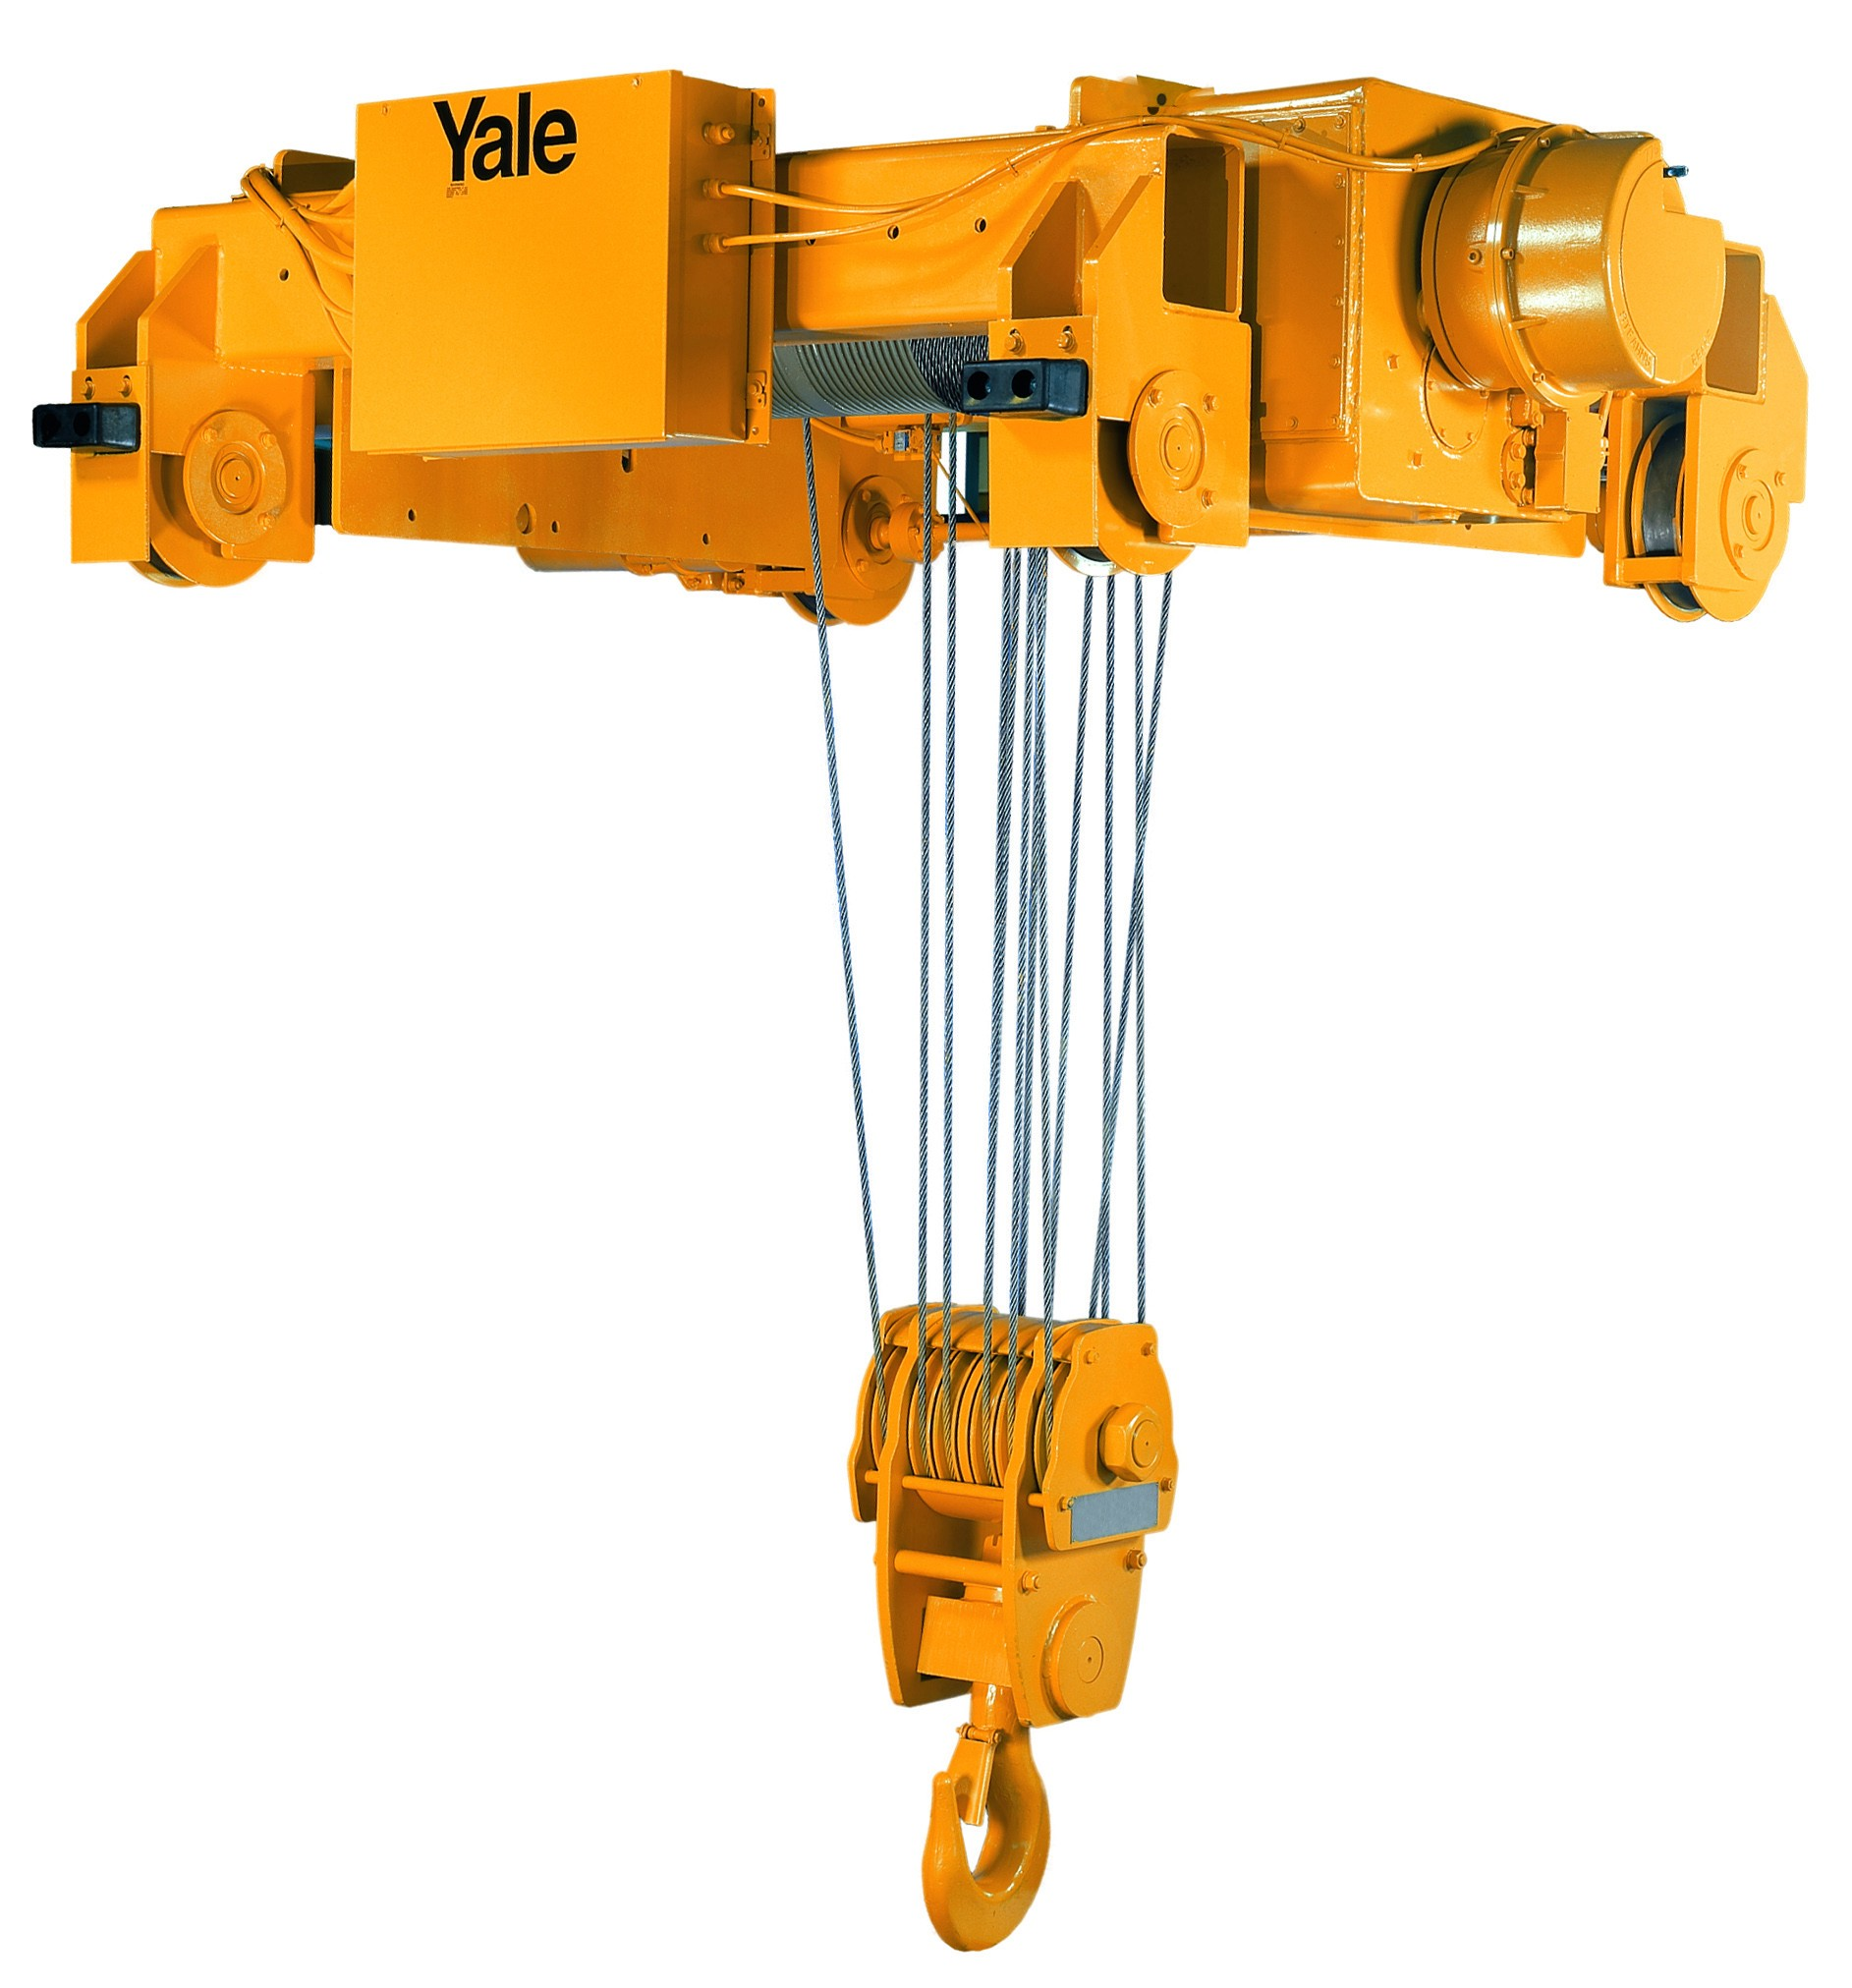 YALE - Cable King 20 Ton Electric Wire Rope Hoist (15fpm & 126' Lift Single Reeve)